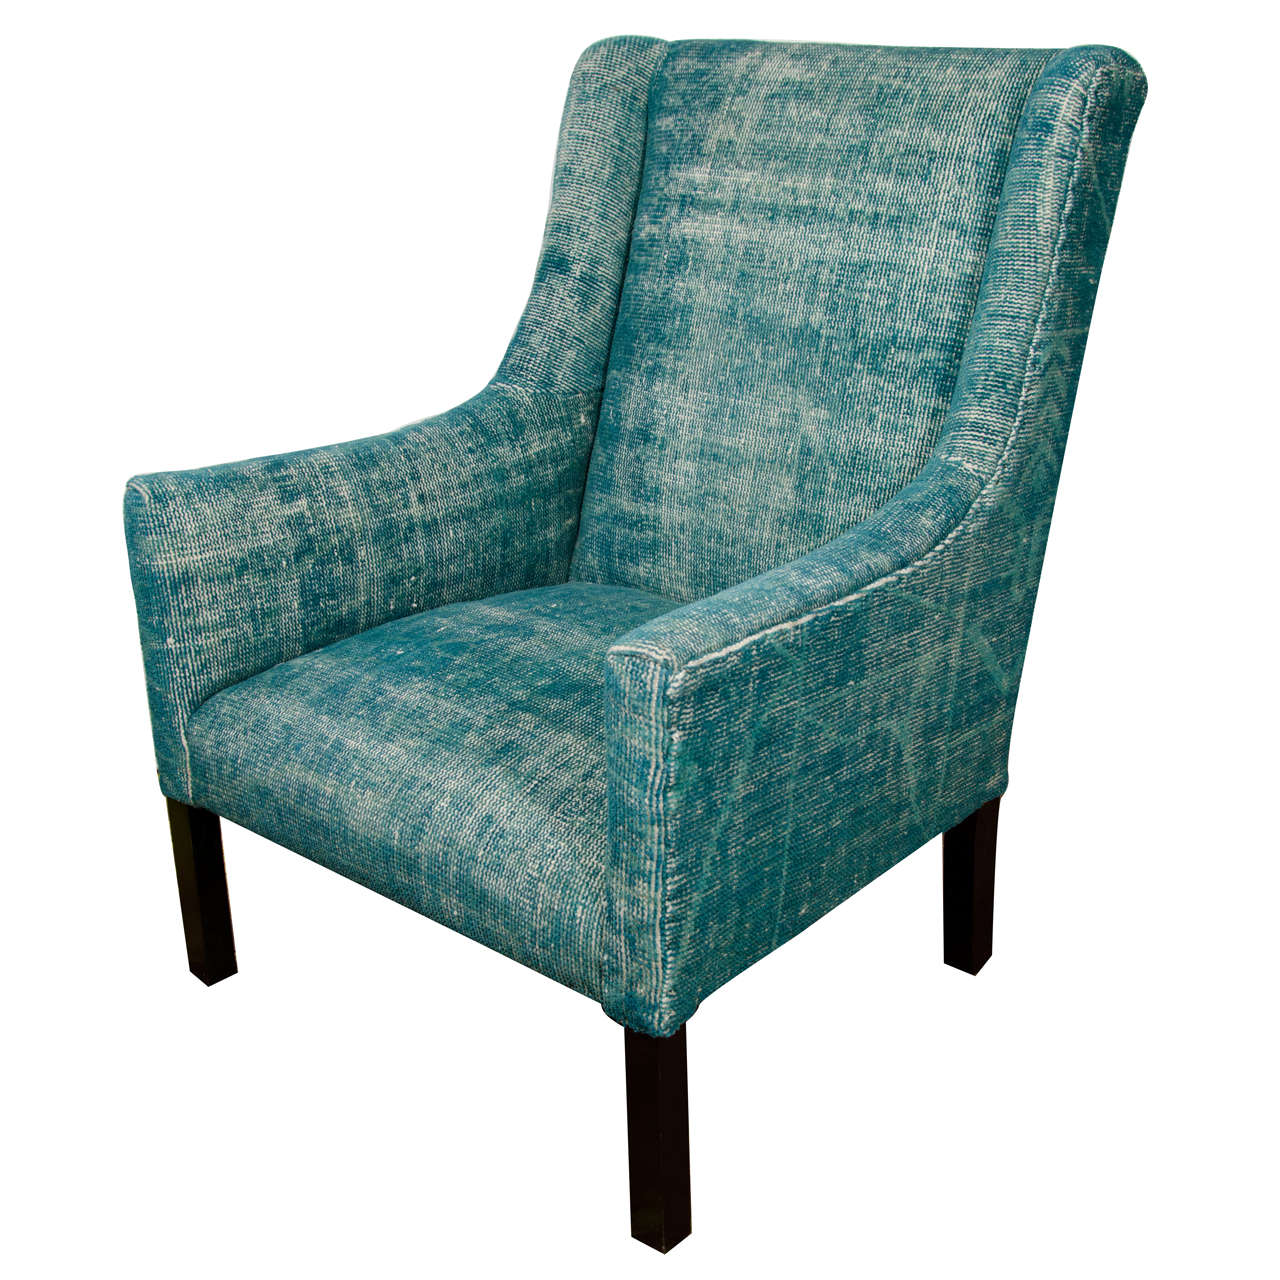 Eames Chair India Indian Dhurrie Upholstered Teal Arm Chair At 1stdibs